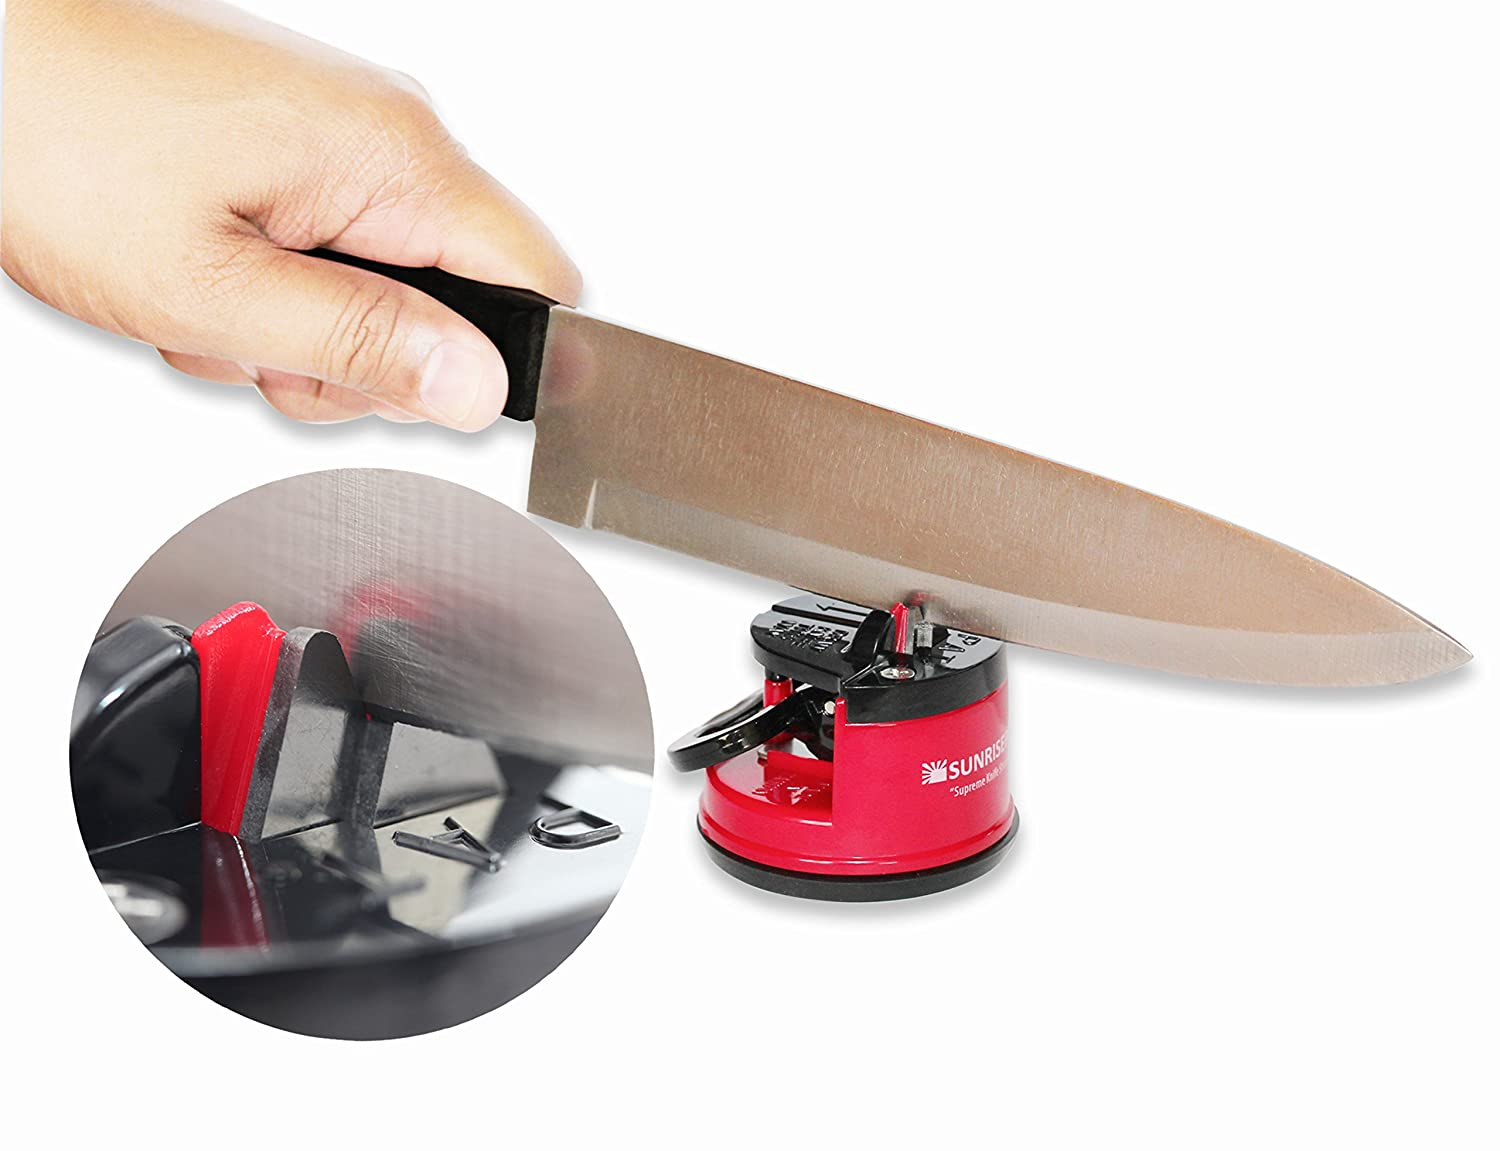 Kitchen Devil Knife Sharpener How To Use Top 7 Best Knife Sharpeners Best Knife Sharpeners Reviews